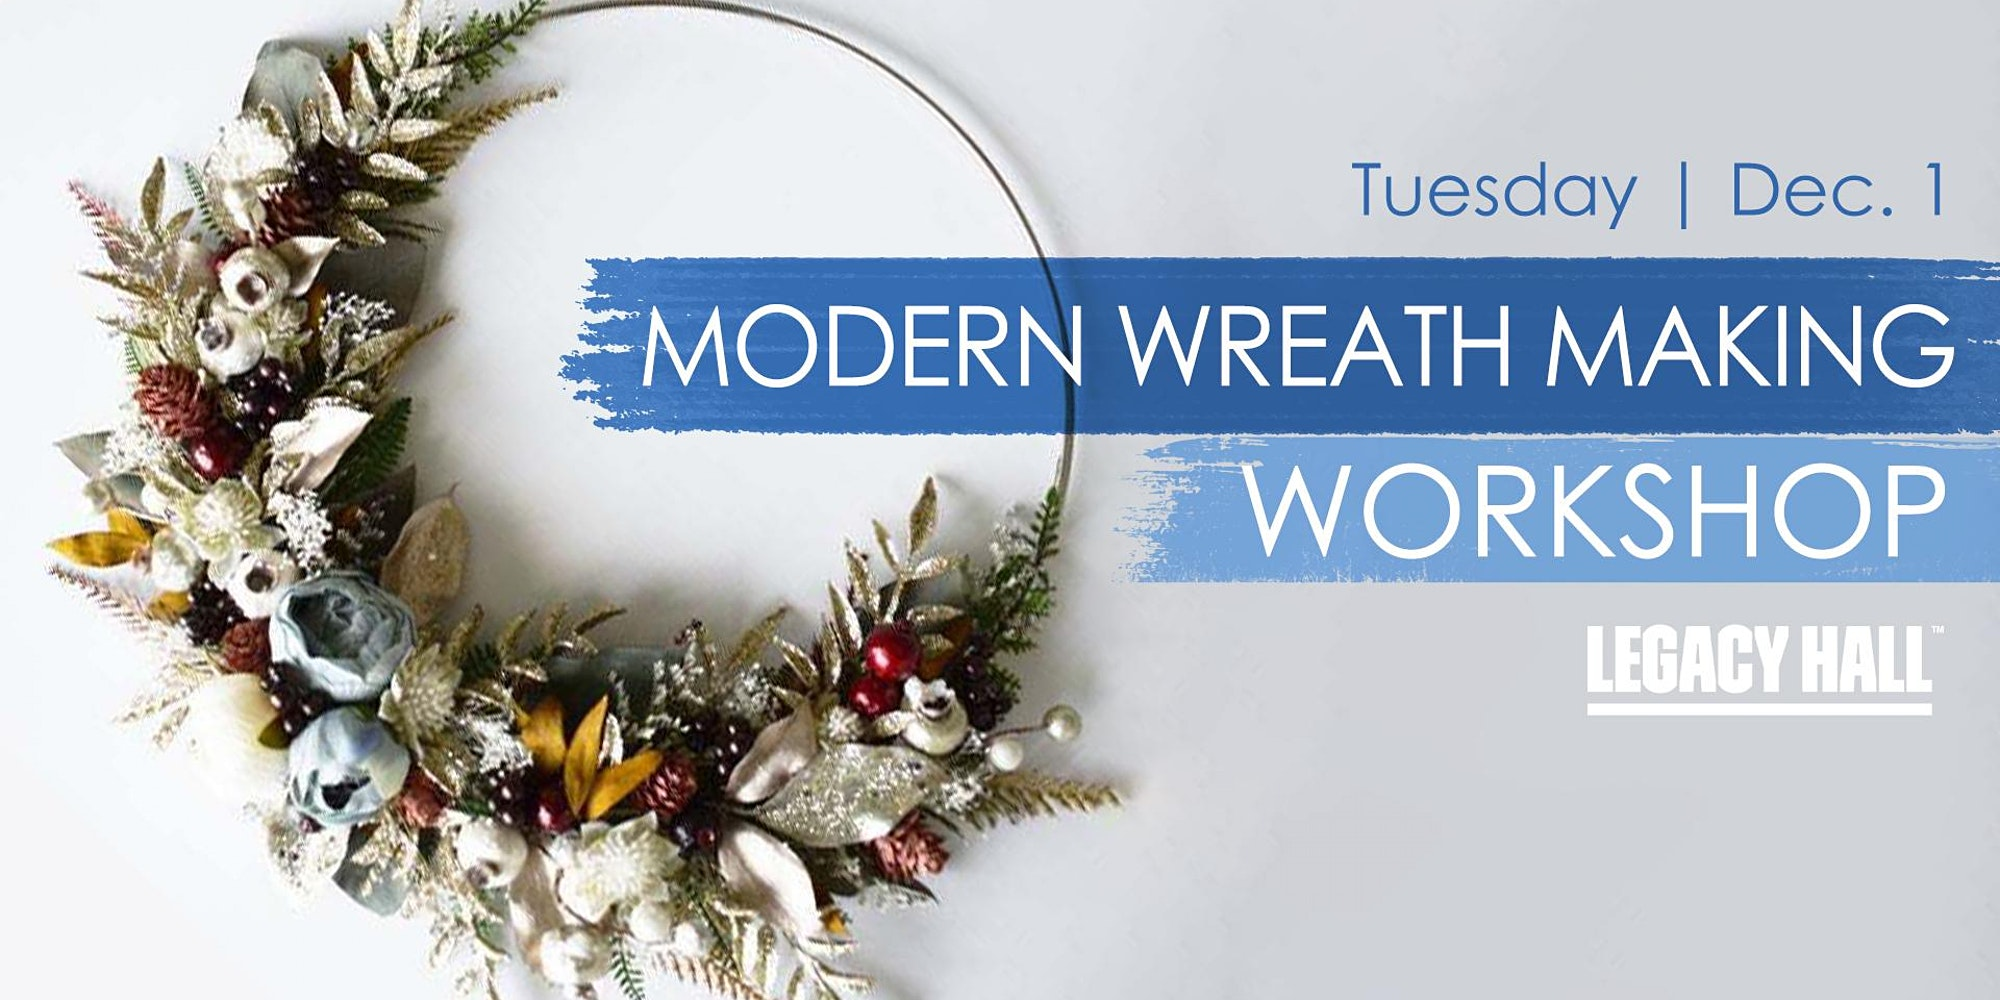 Promo image of Modern Wreath Making Workshop at Legacy Hall